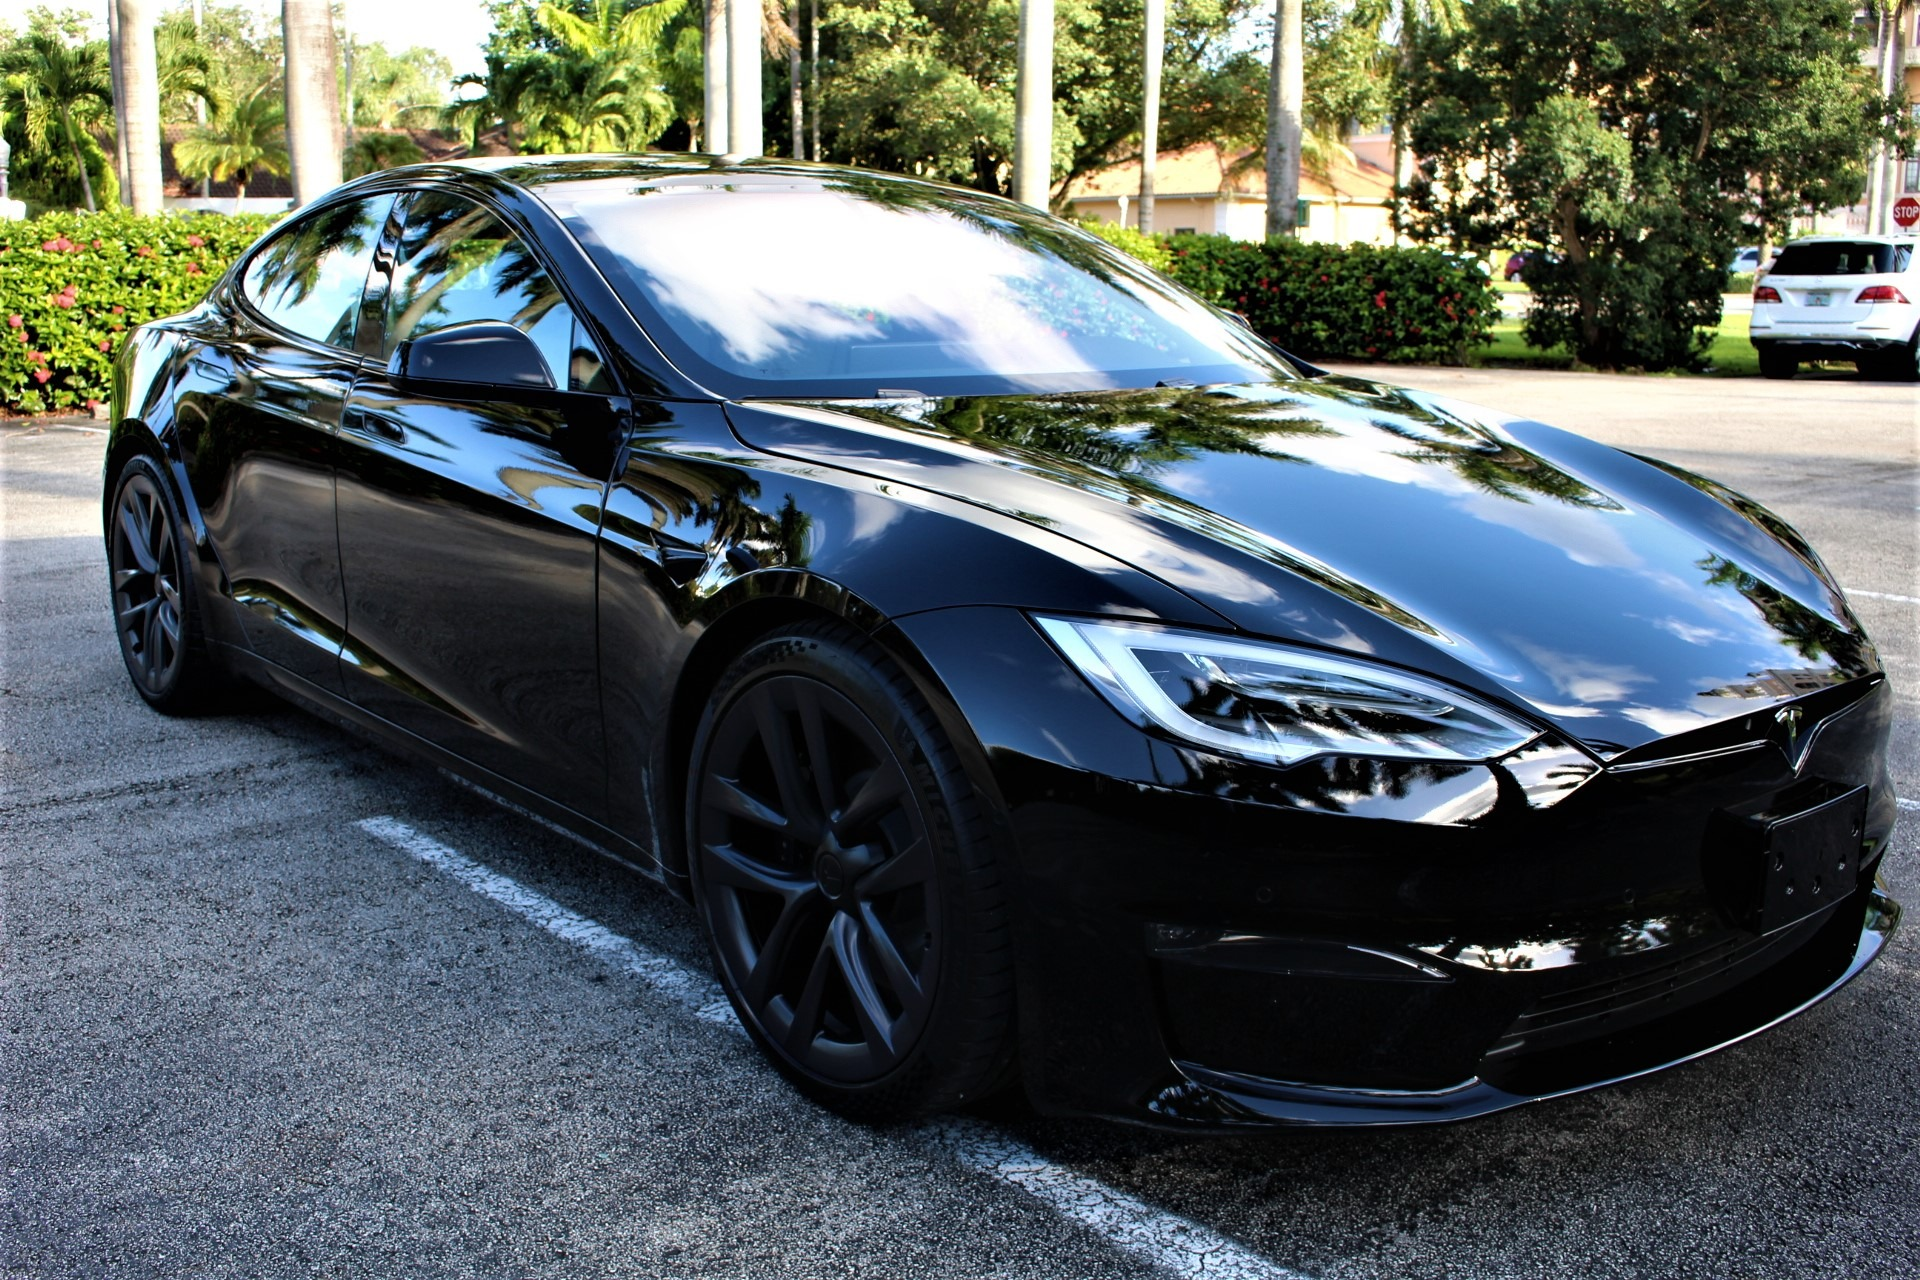 Used 2021 Tesla Model S Plaid for sale $148,850 at The Gables Sports Cars in Miami FL 33146 3